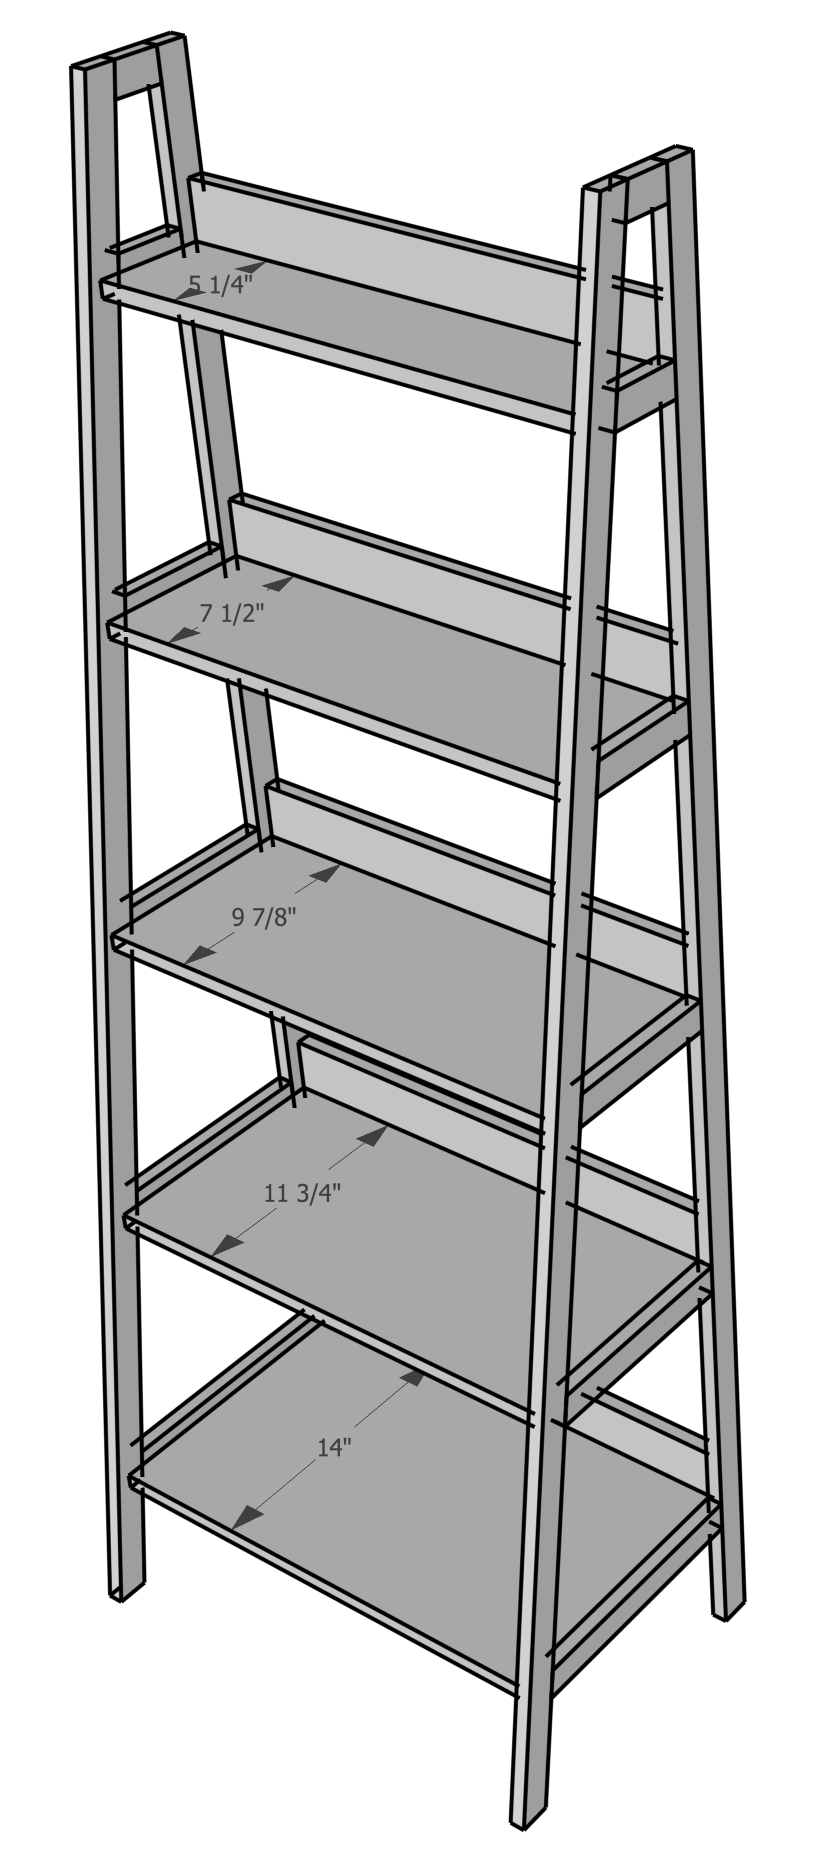 How To Build A Leaning Ladder Shelf